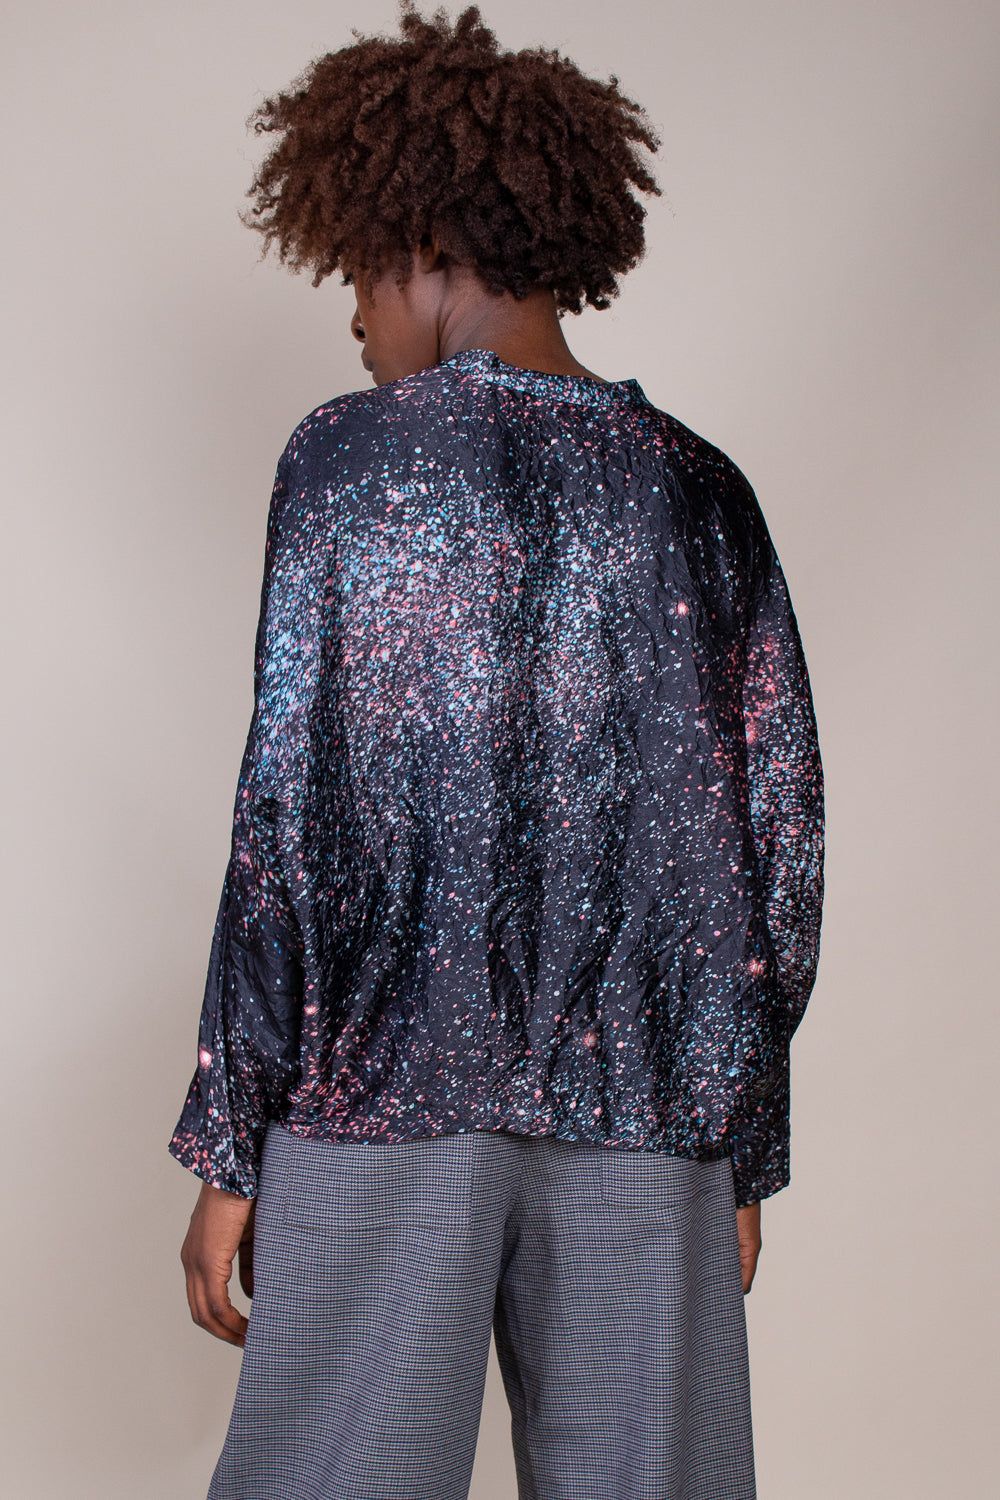 Sweati Top in H Print